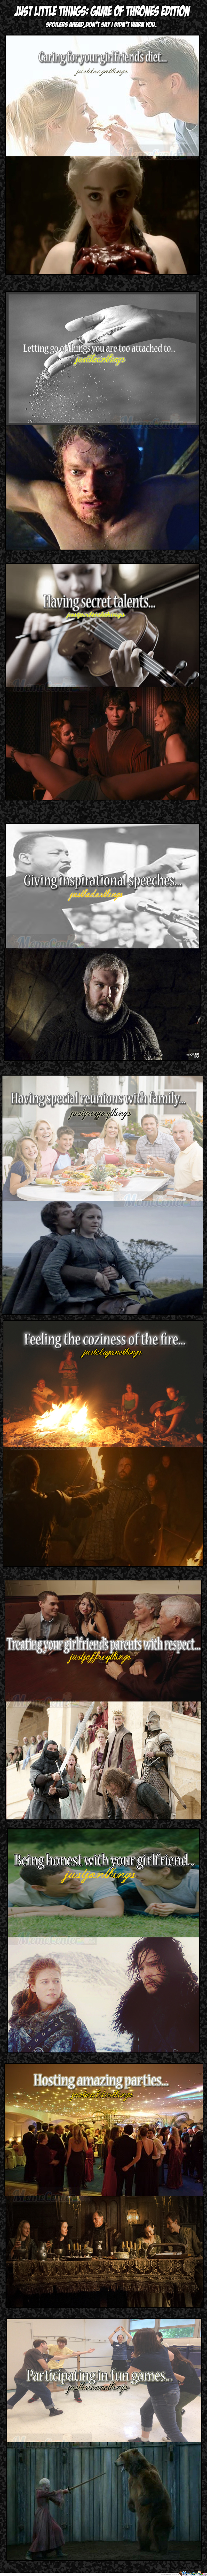 Just Little/girly Things:got Edition